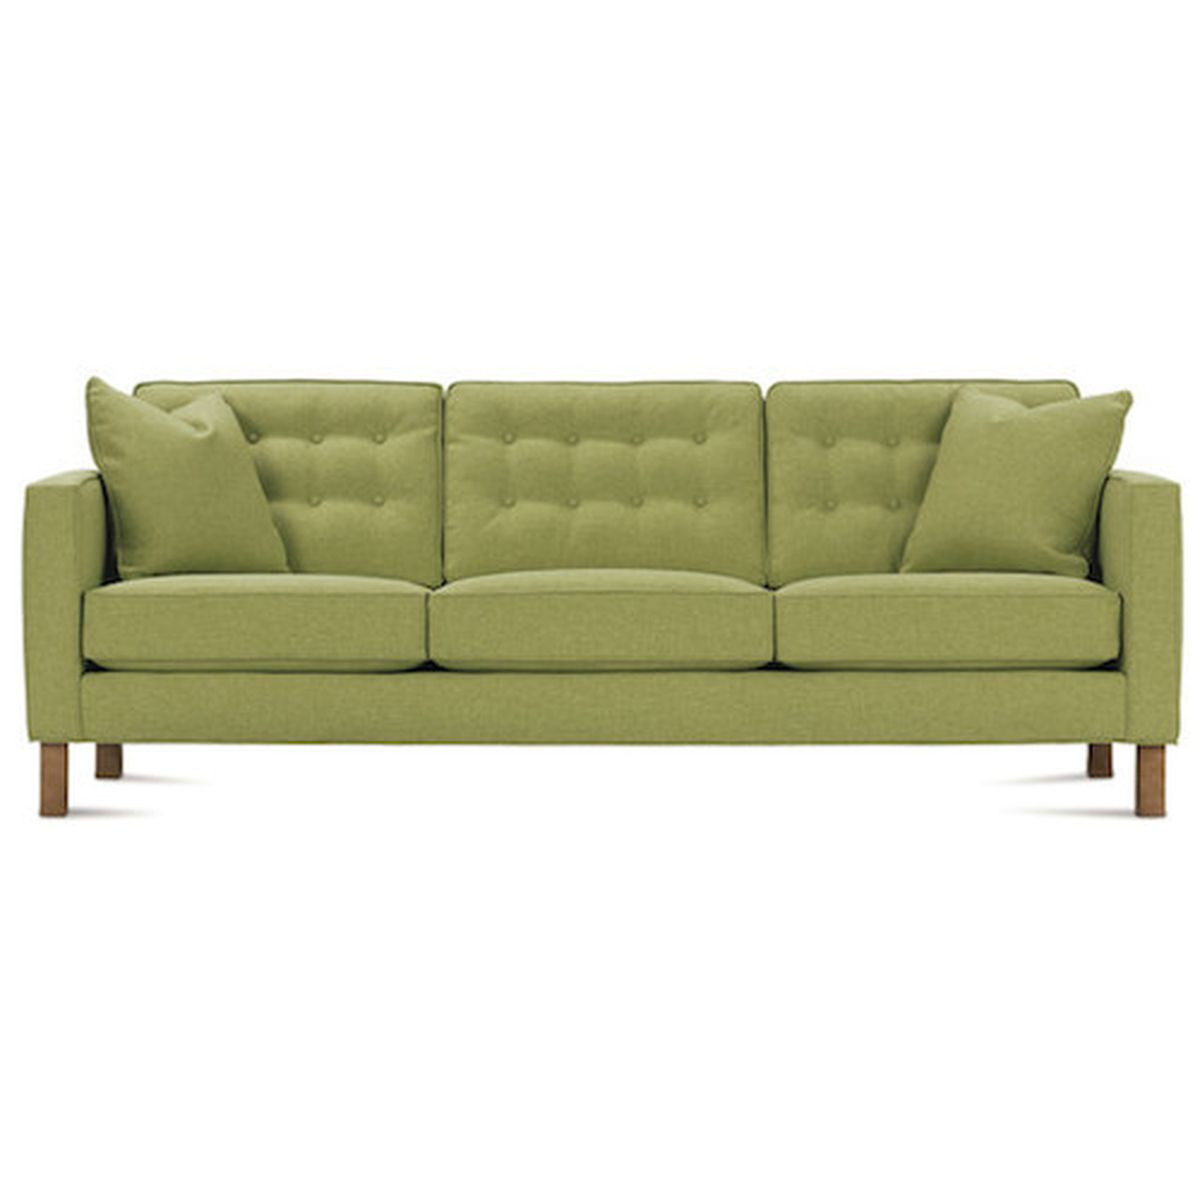 sectional sofa under 2000 how to dispose set 5 midcentury style sofas 2 000 curbed